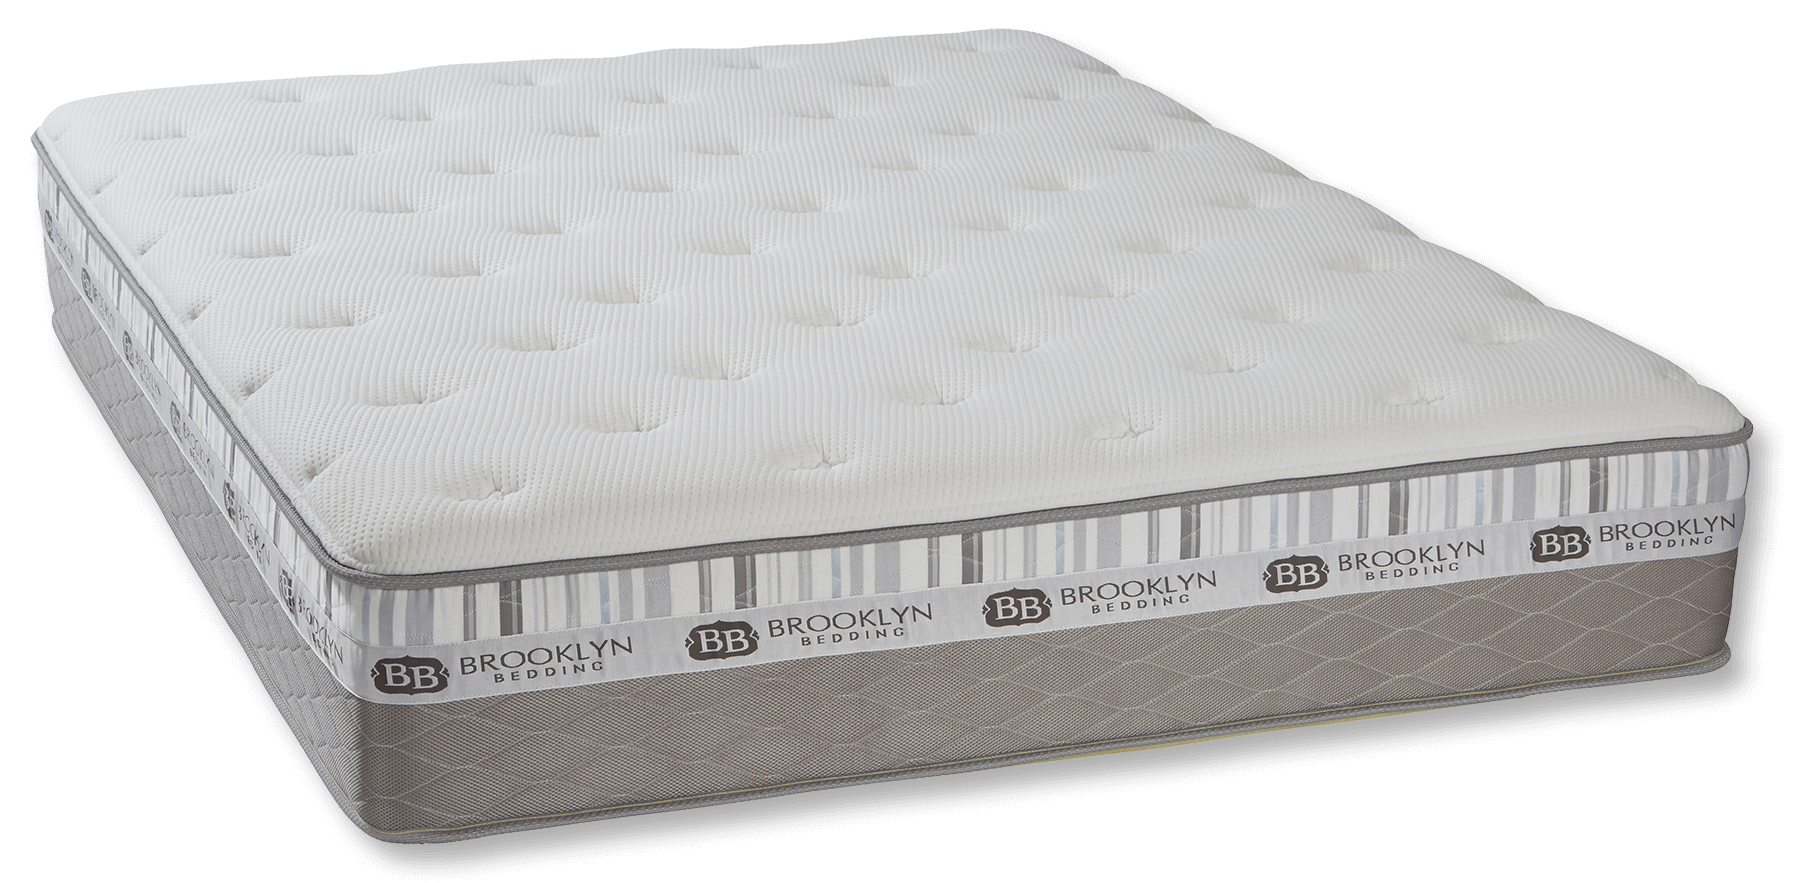 limited longest type mattresses can and what sized of mattress cc come restonic in is good best xl body that versions california for super buy news some twin from the blog a you king to widest your